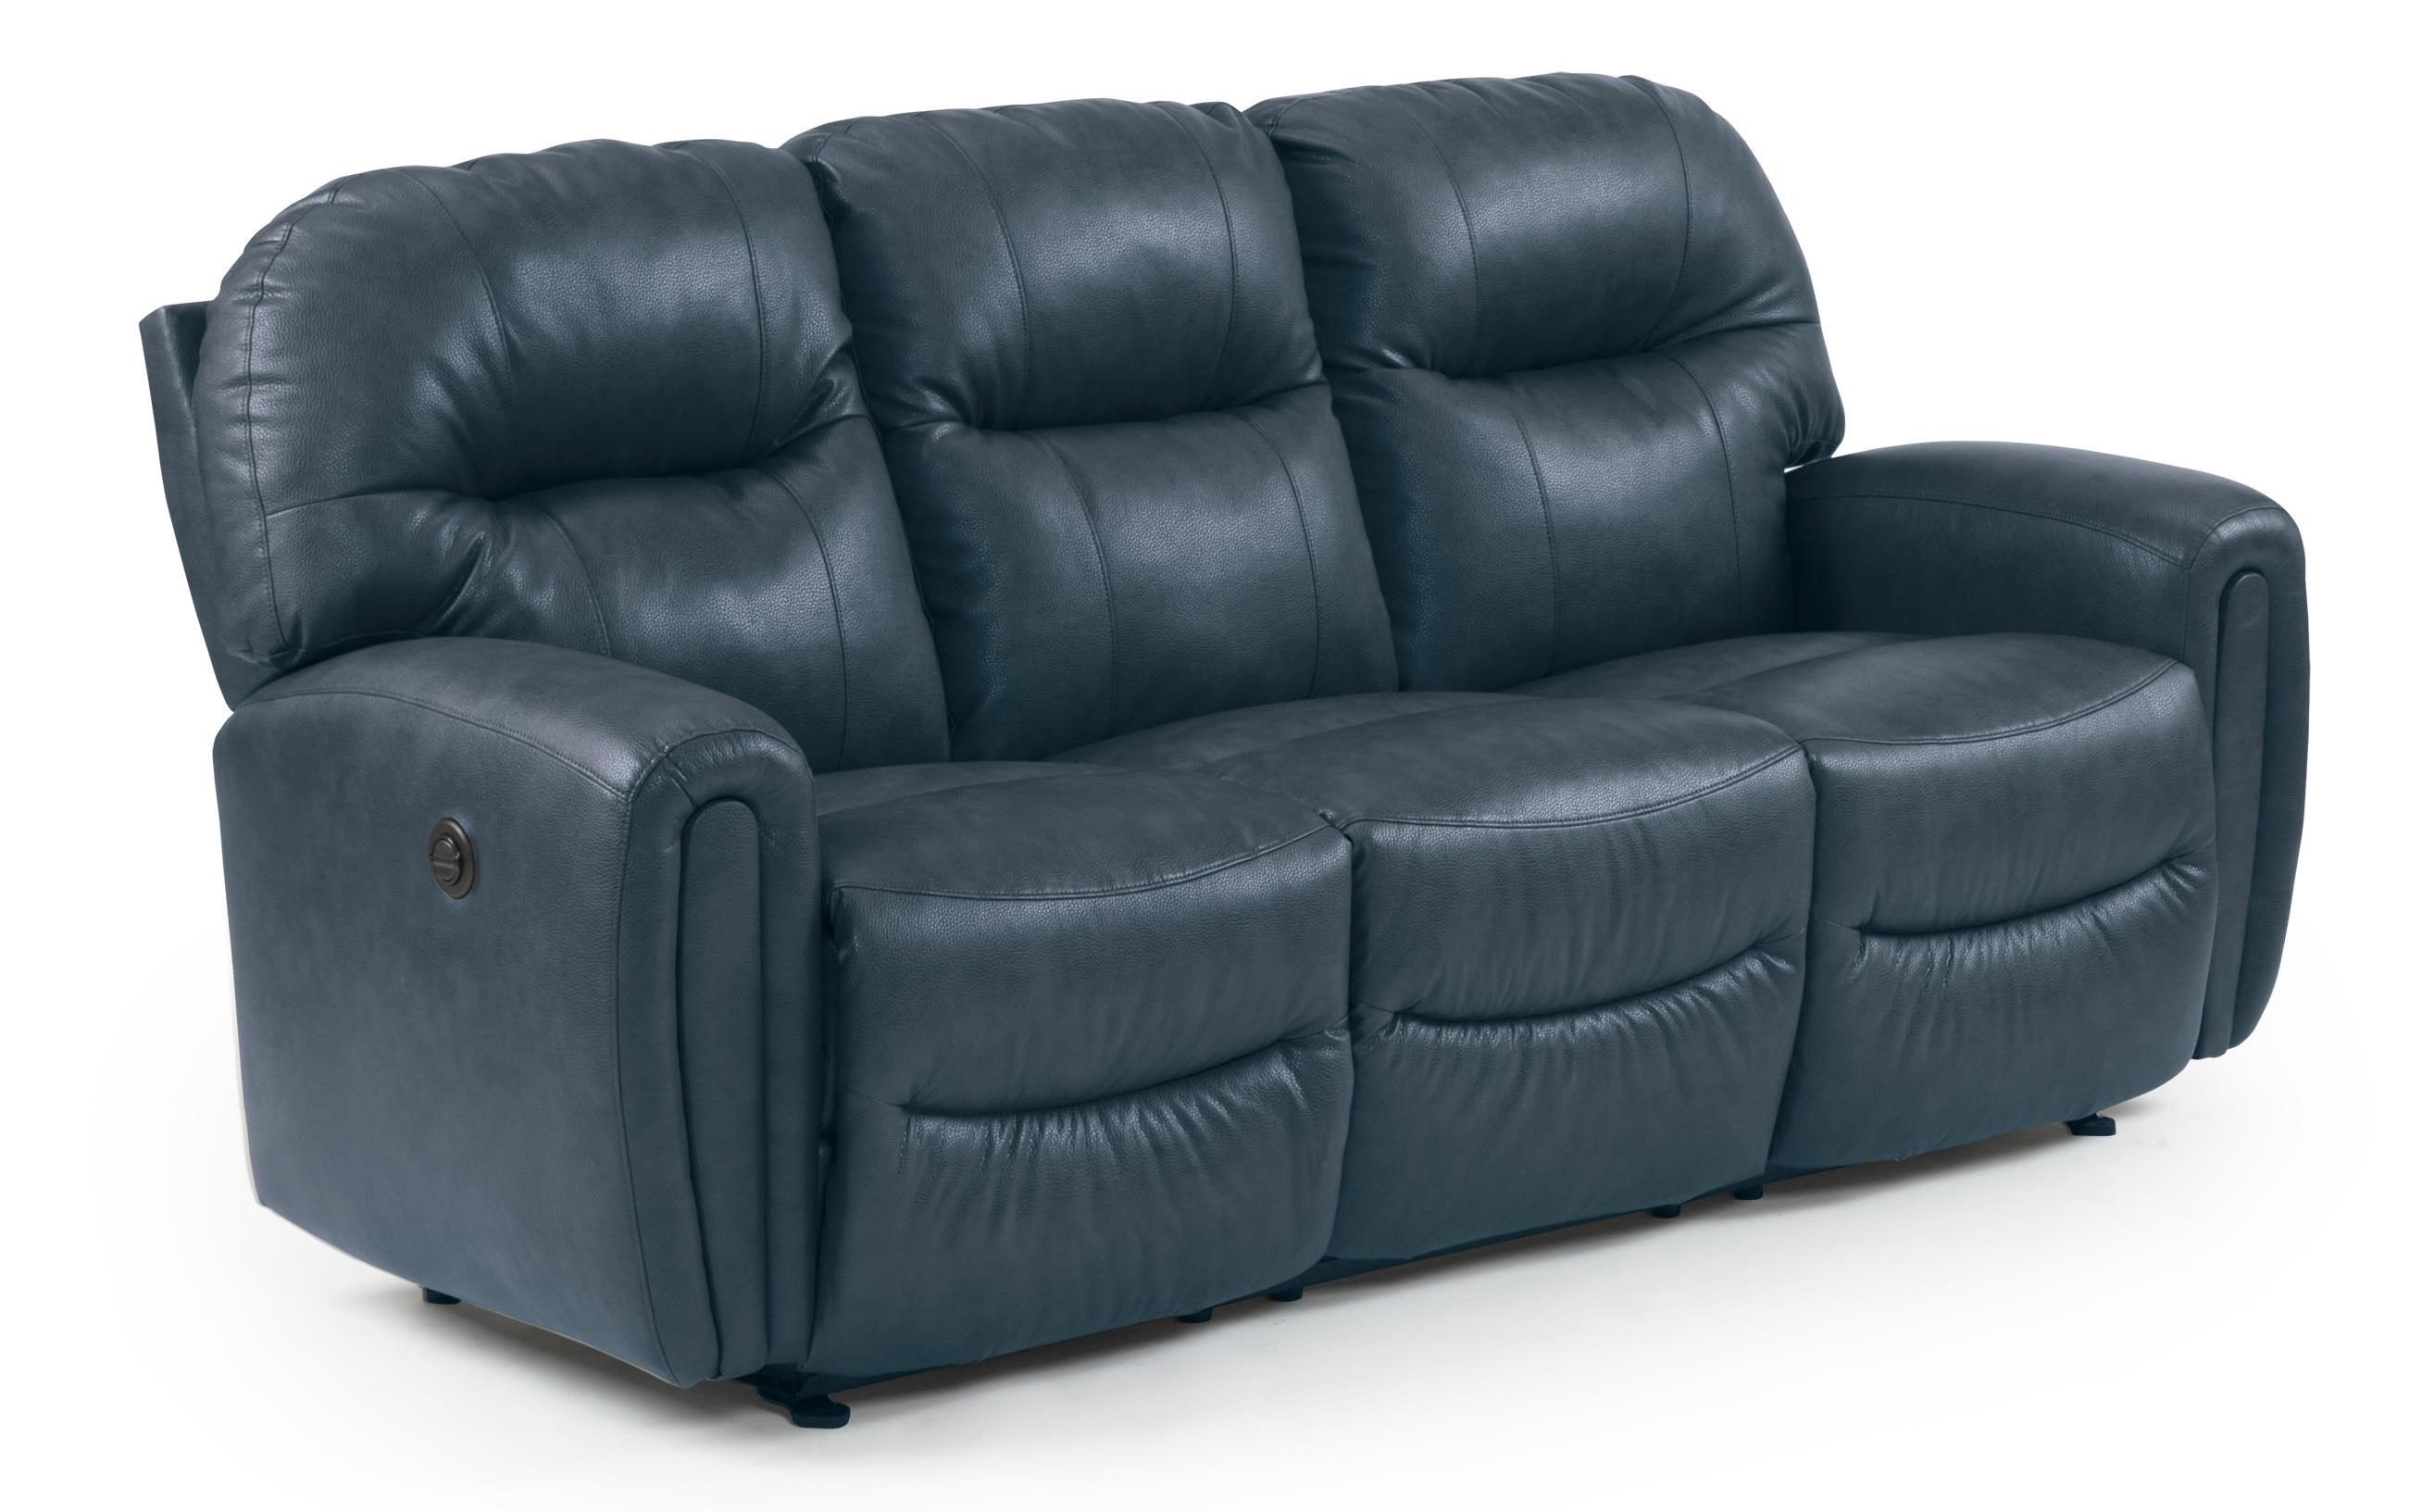 Best Home Furnishings Markson Power Space Saver Sofa Chaise with Dome Track Arms - Great American Home Store - Reclining Sofas  sc 1 st  Great American Home Store : best power recliner sofa - islam-shia.org